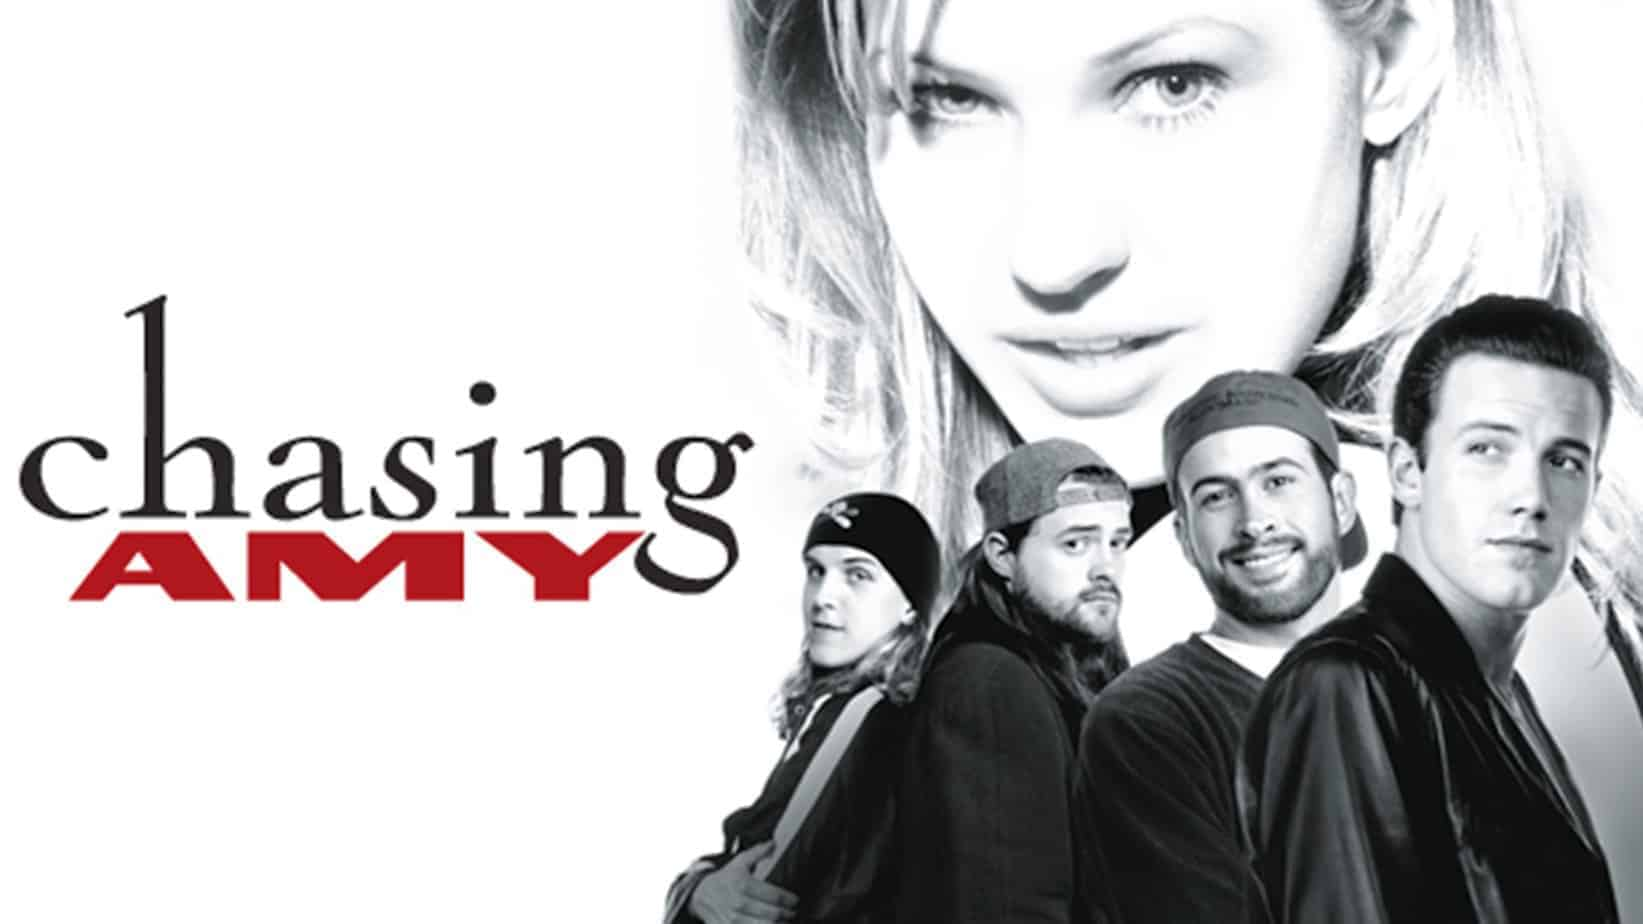 Kevin Smith's Chasing Amy